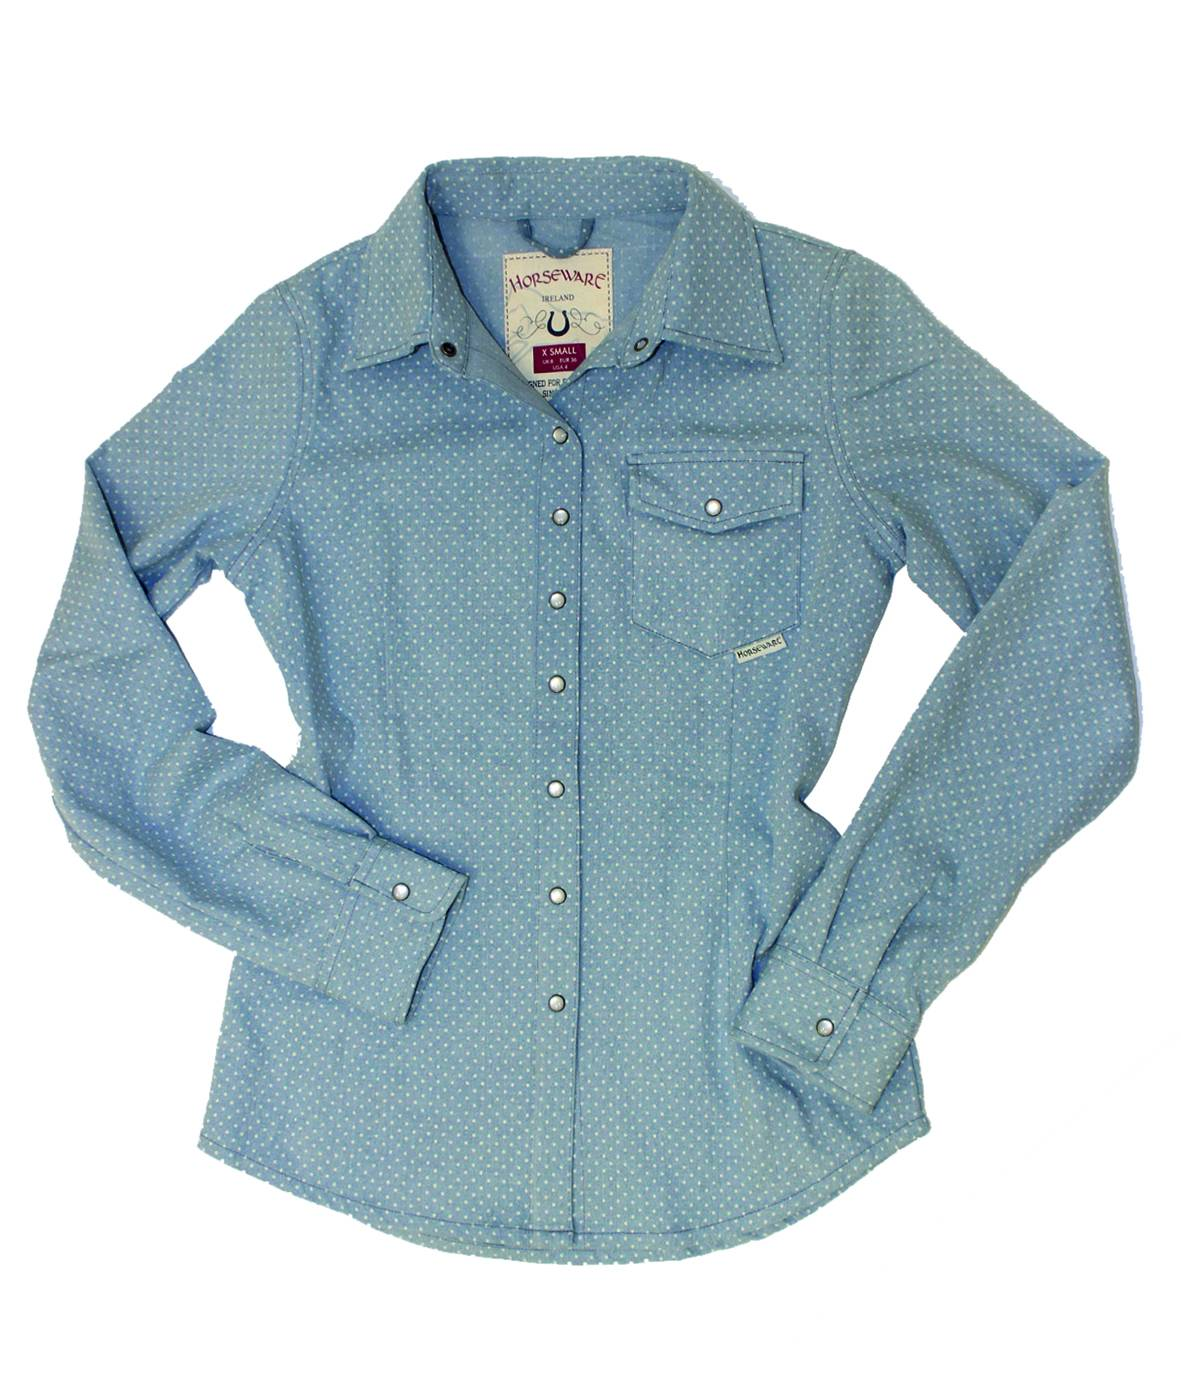 Horseware Nola Chambray Shirt